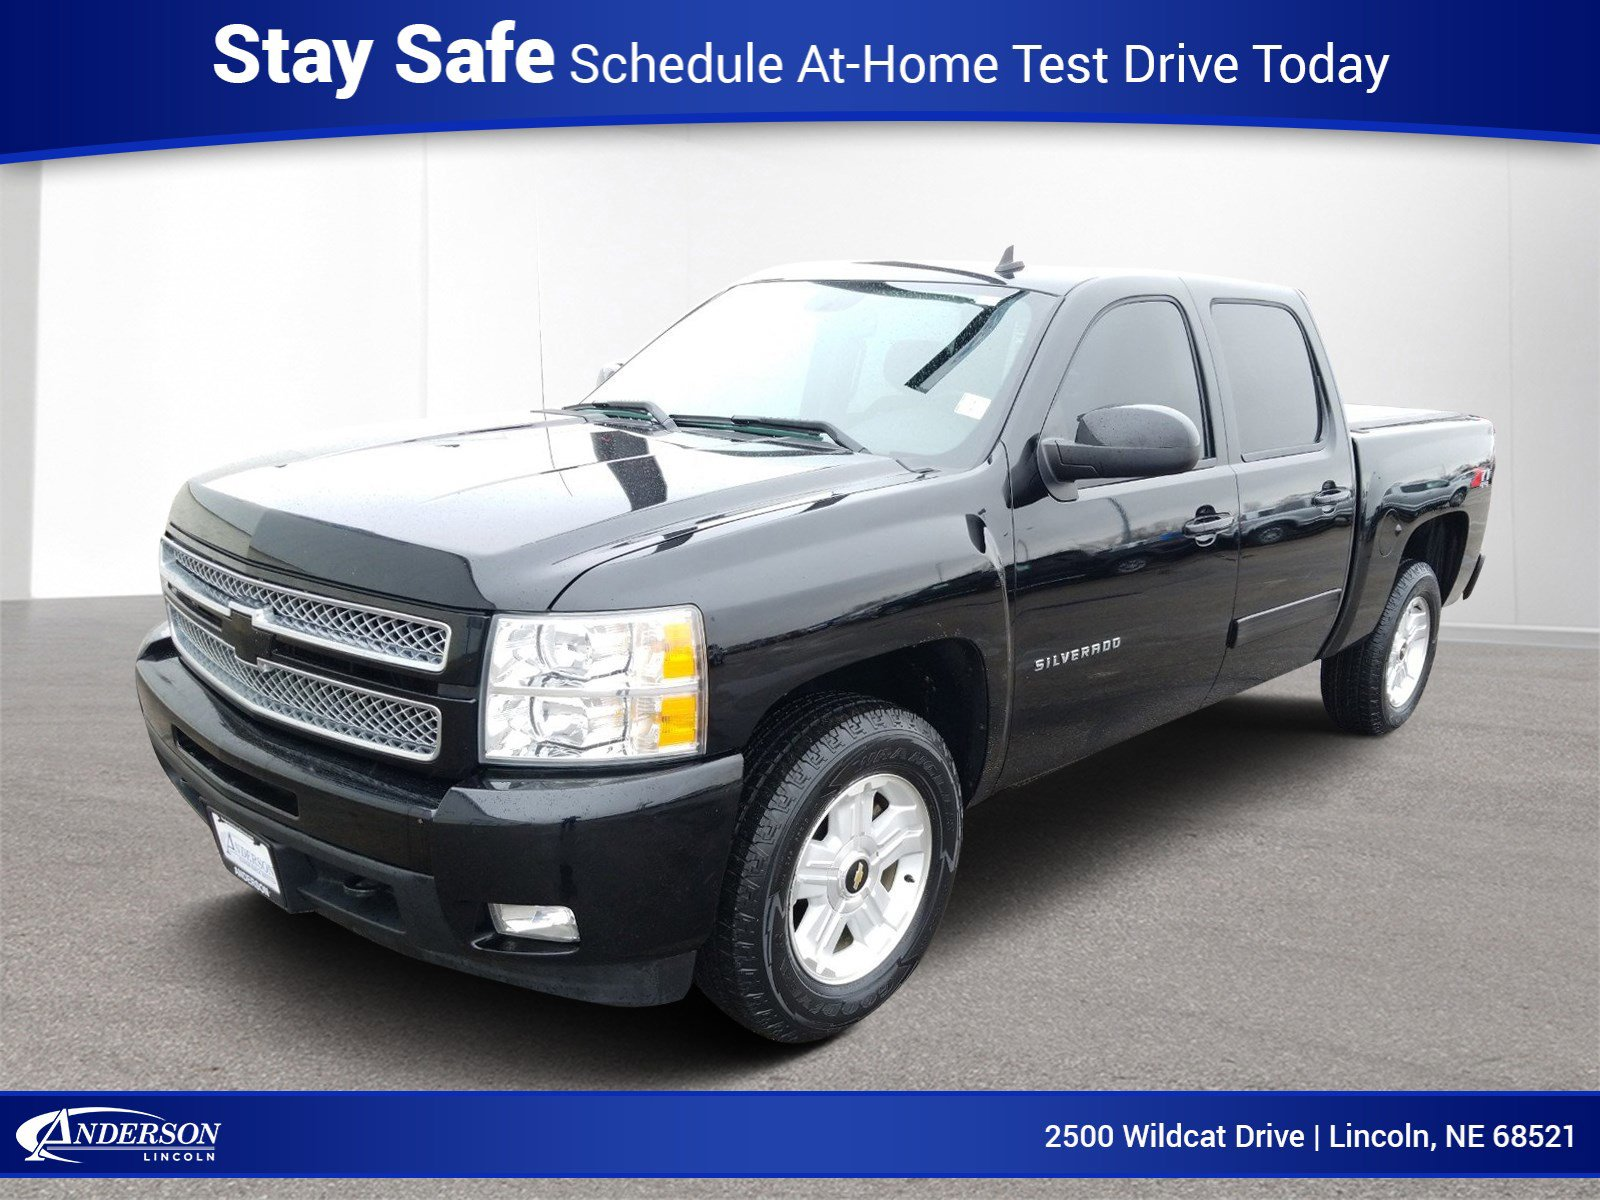 Used 2012 Chevrolet Silverado 1500 LTZ Crew Cab Pickup for sale in Lincoln NE